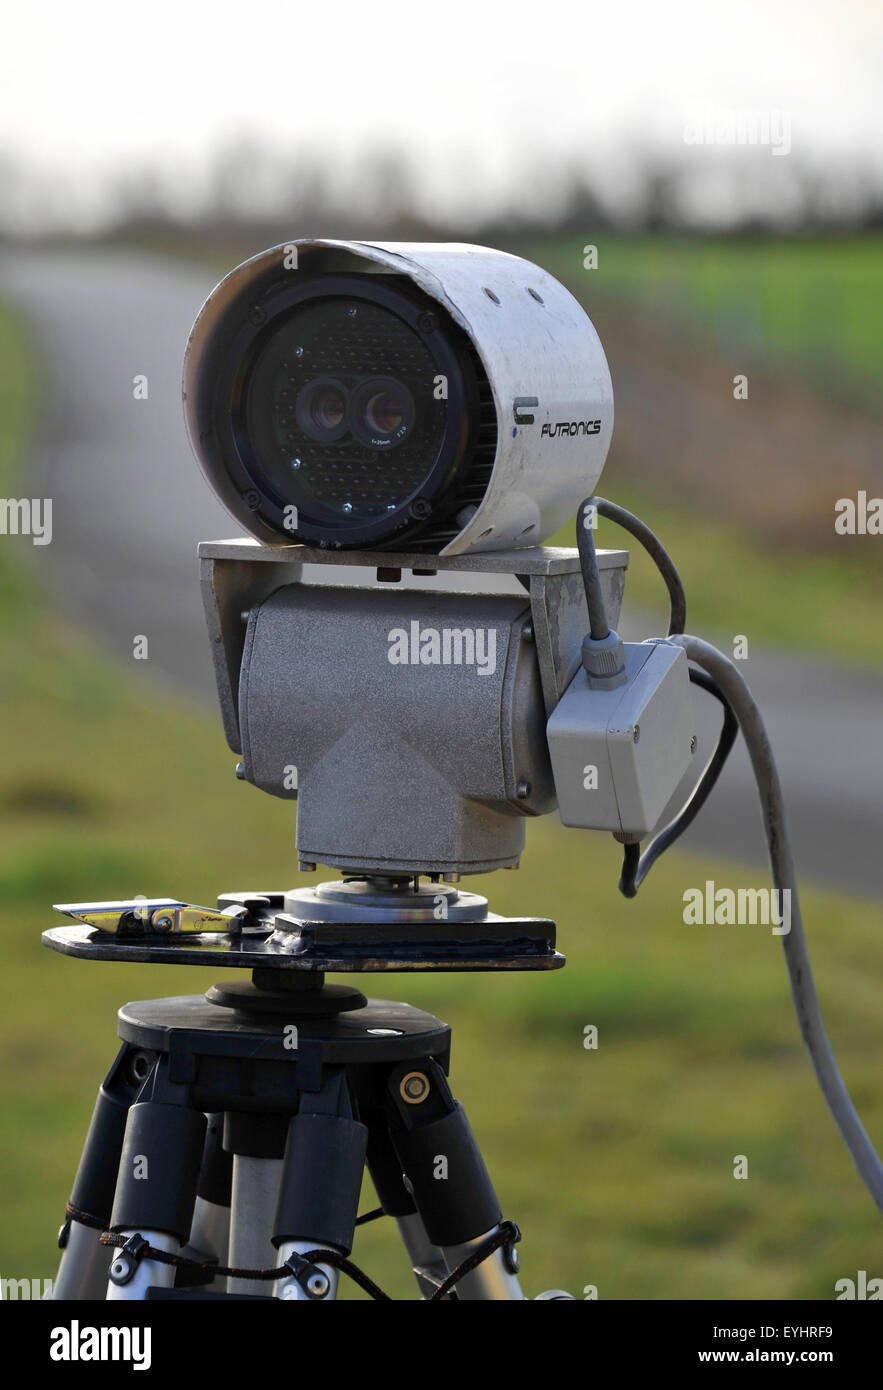 DVLA road fund licence (tax disk) detector camera being used to read number plates and check that the cars is on - Stock Image